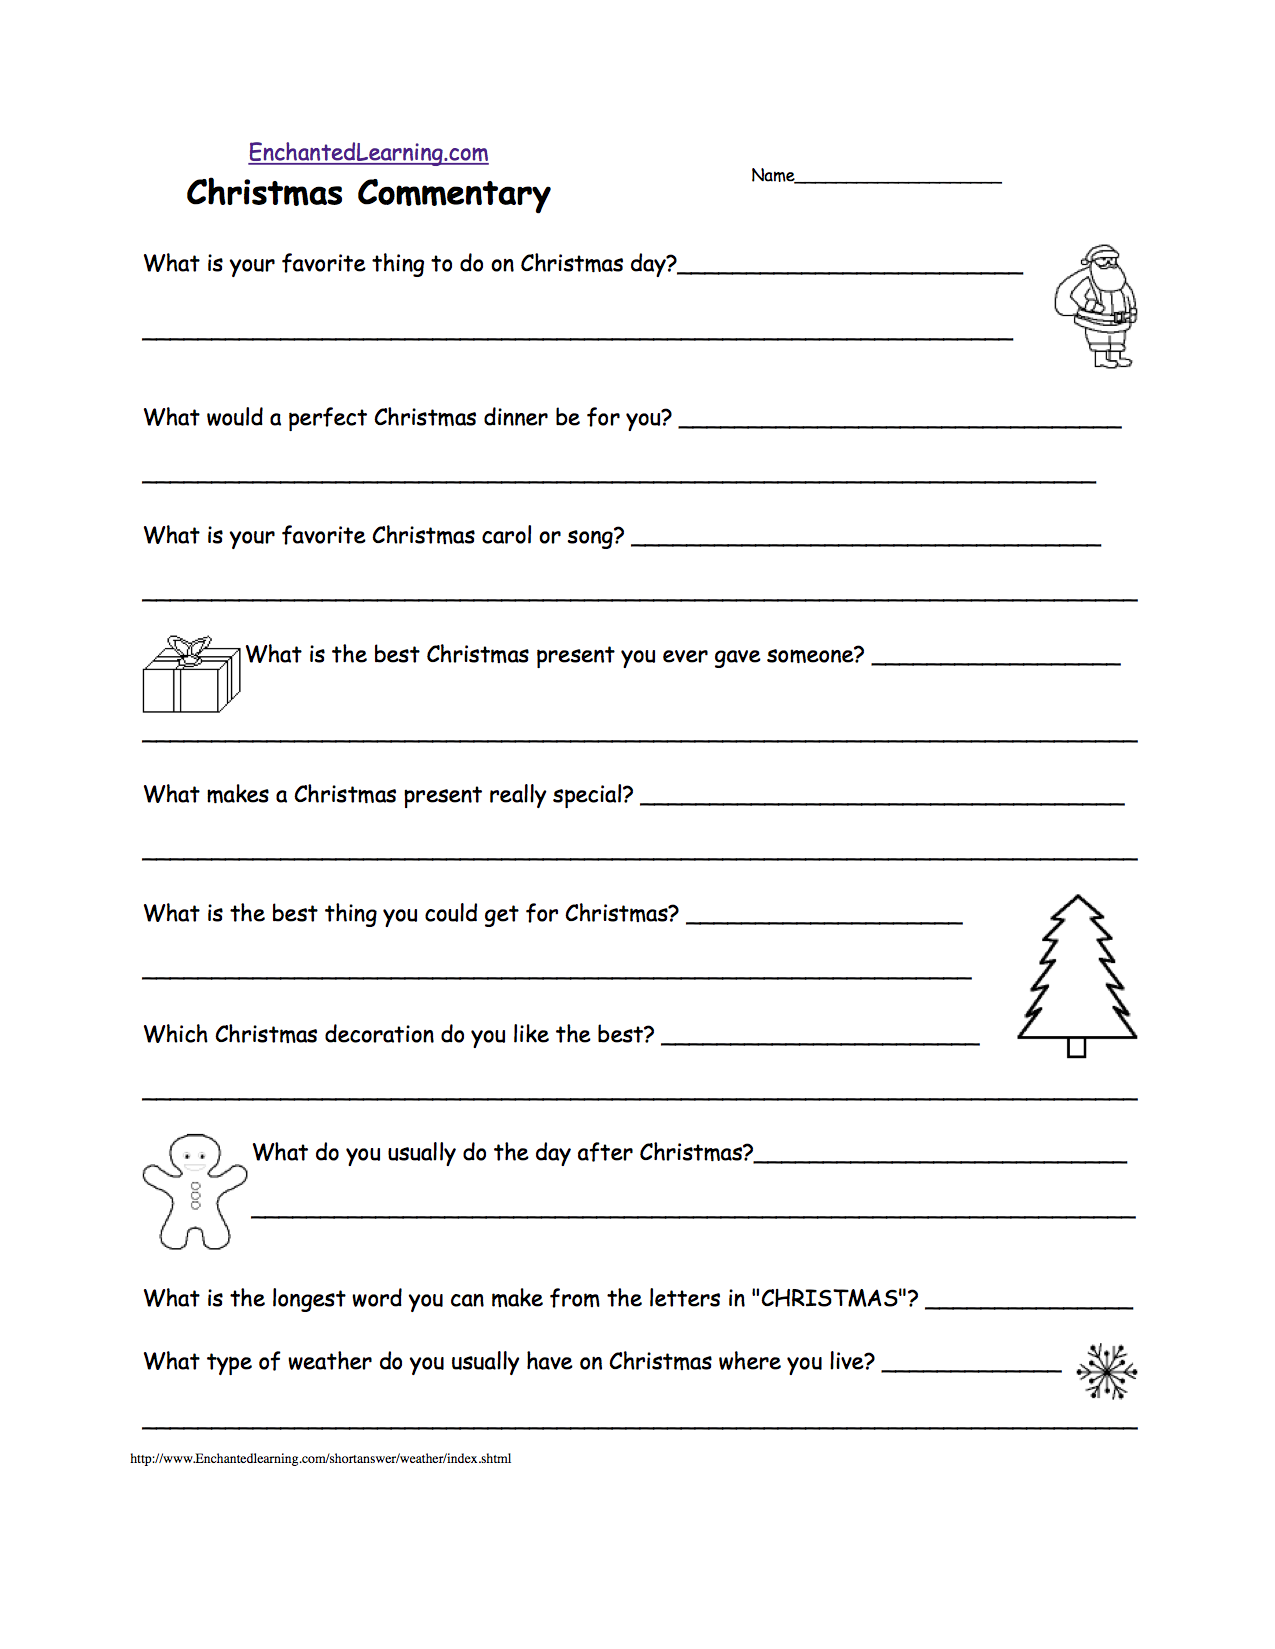 Worksheets Christmas Writing Worksheets christmas activities writing worksheets enchantedlearning com worksheet birthday commentary